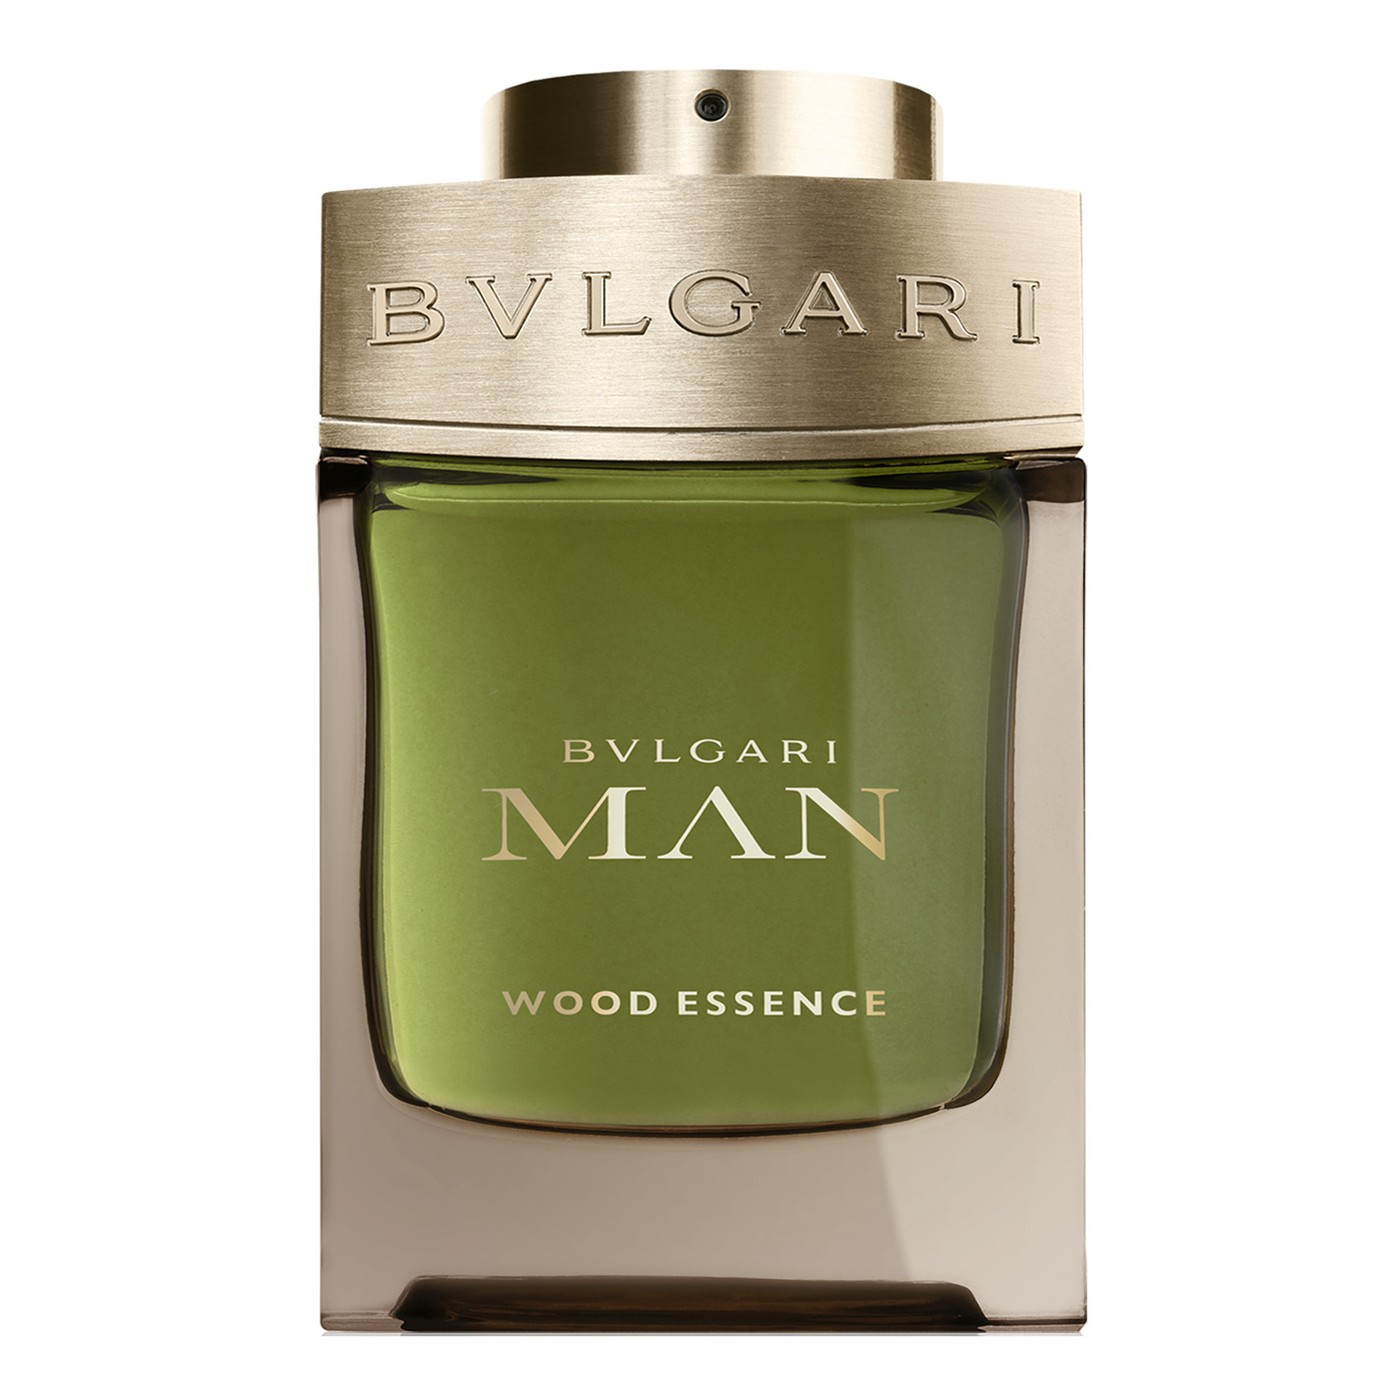 Bvlgari Man Wood Essence Eau de Parfum 100ml Male Perfume Men Perfume BVLGARI- Perfume